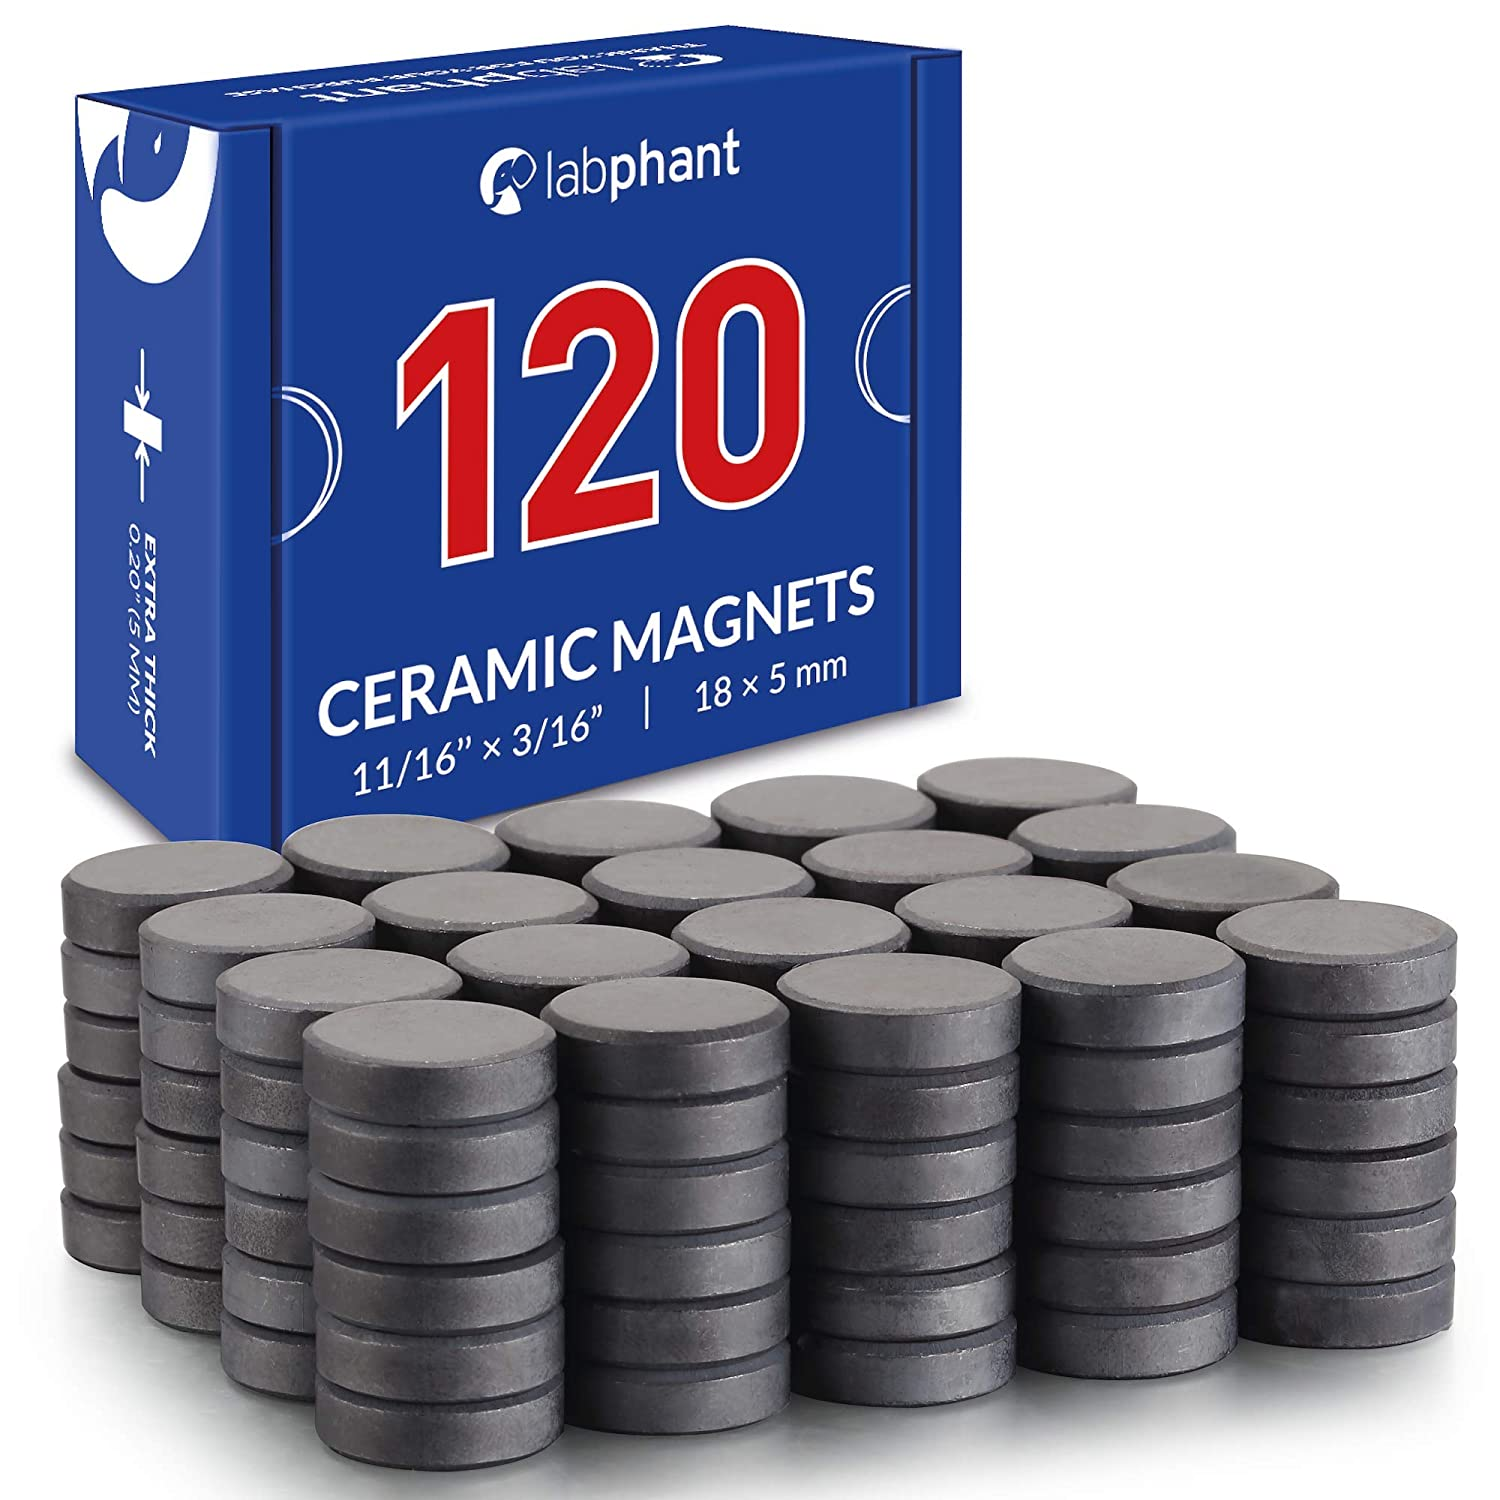 Ceramic Magnets, 120 Pieces Round Disk Magnets (Each .709 inch (Ø 18 x 5 mm Thickness) Craft Magnets, Perfect for DIY, Art Projects or for whiteboards & Fridge Organization